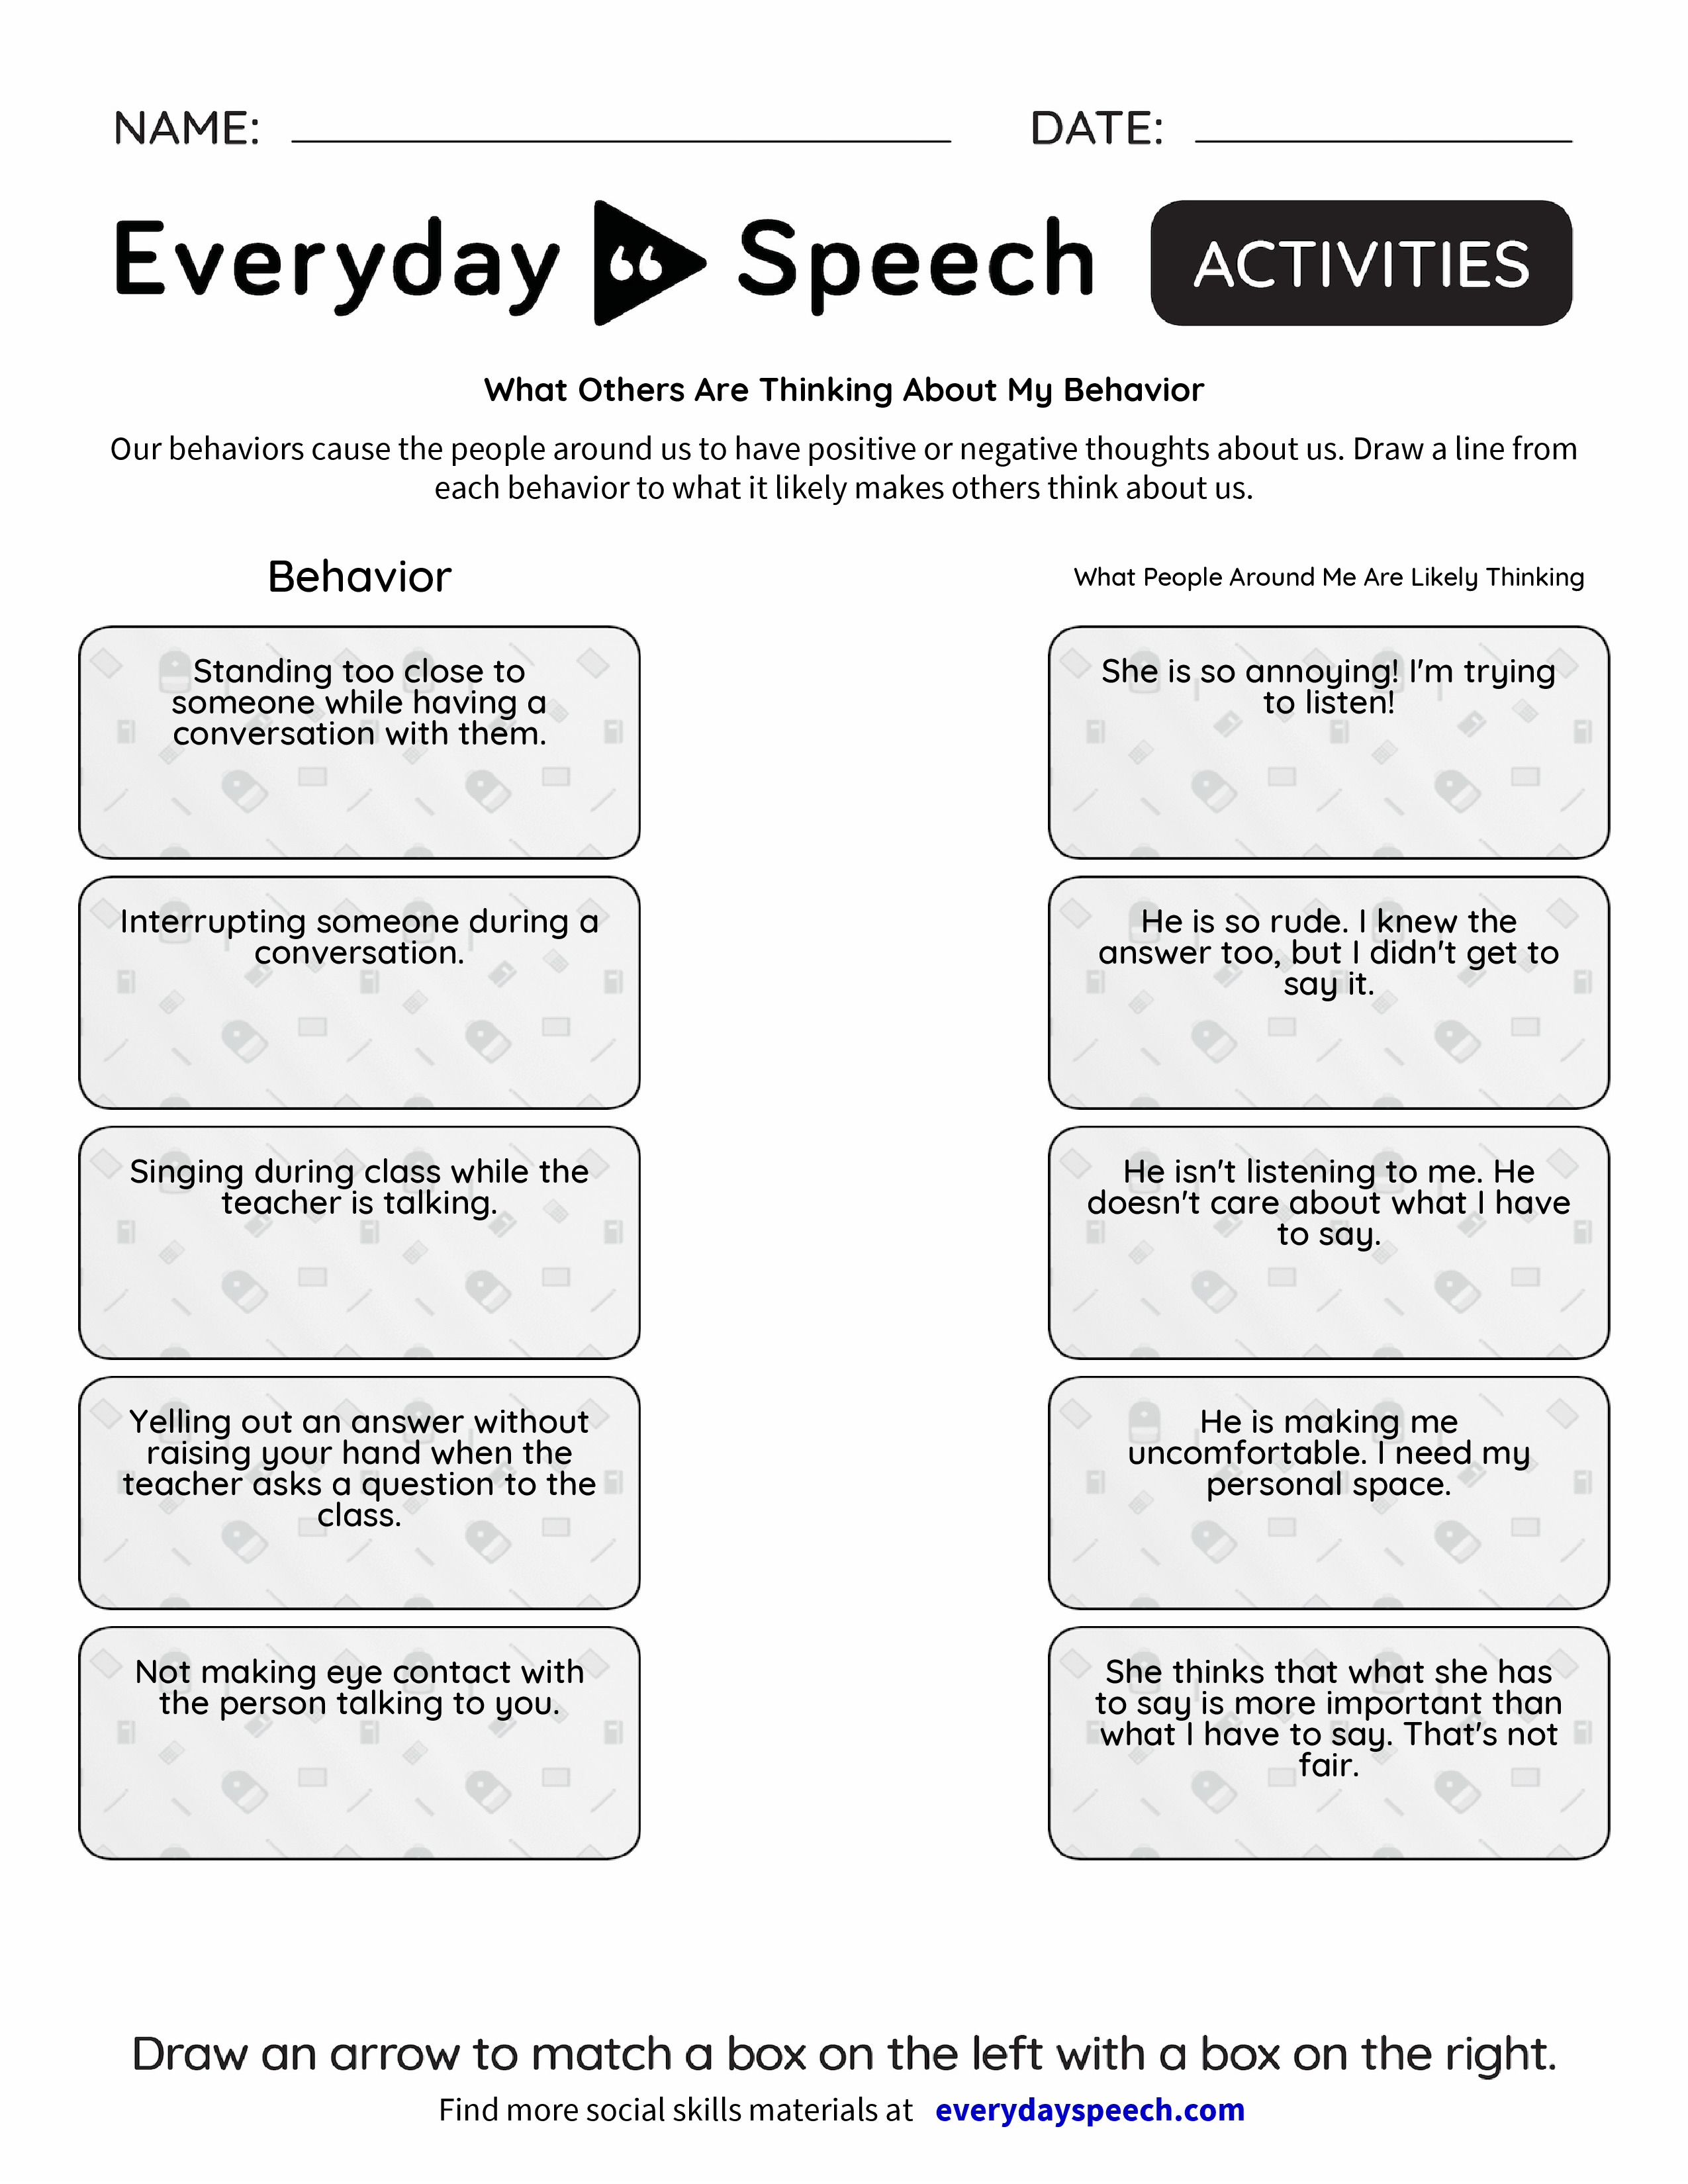 What Others Are Thinking About My Behavior Everyday Speech